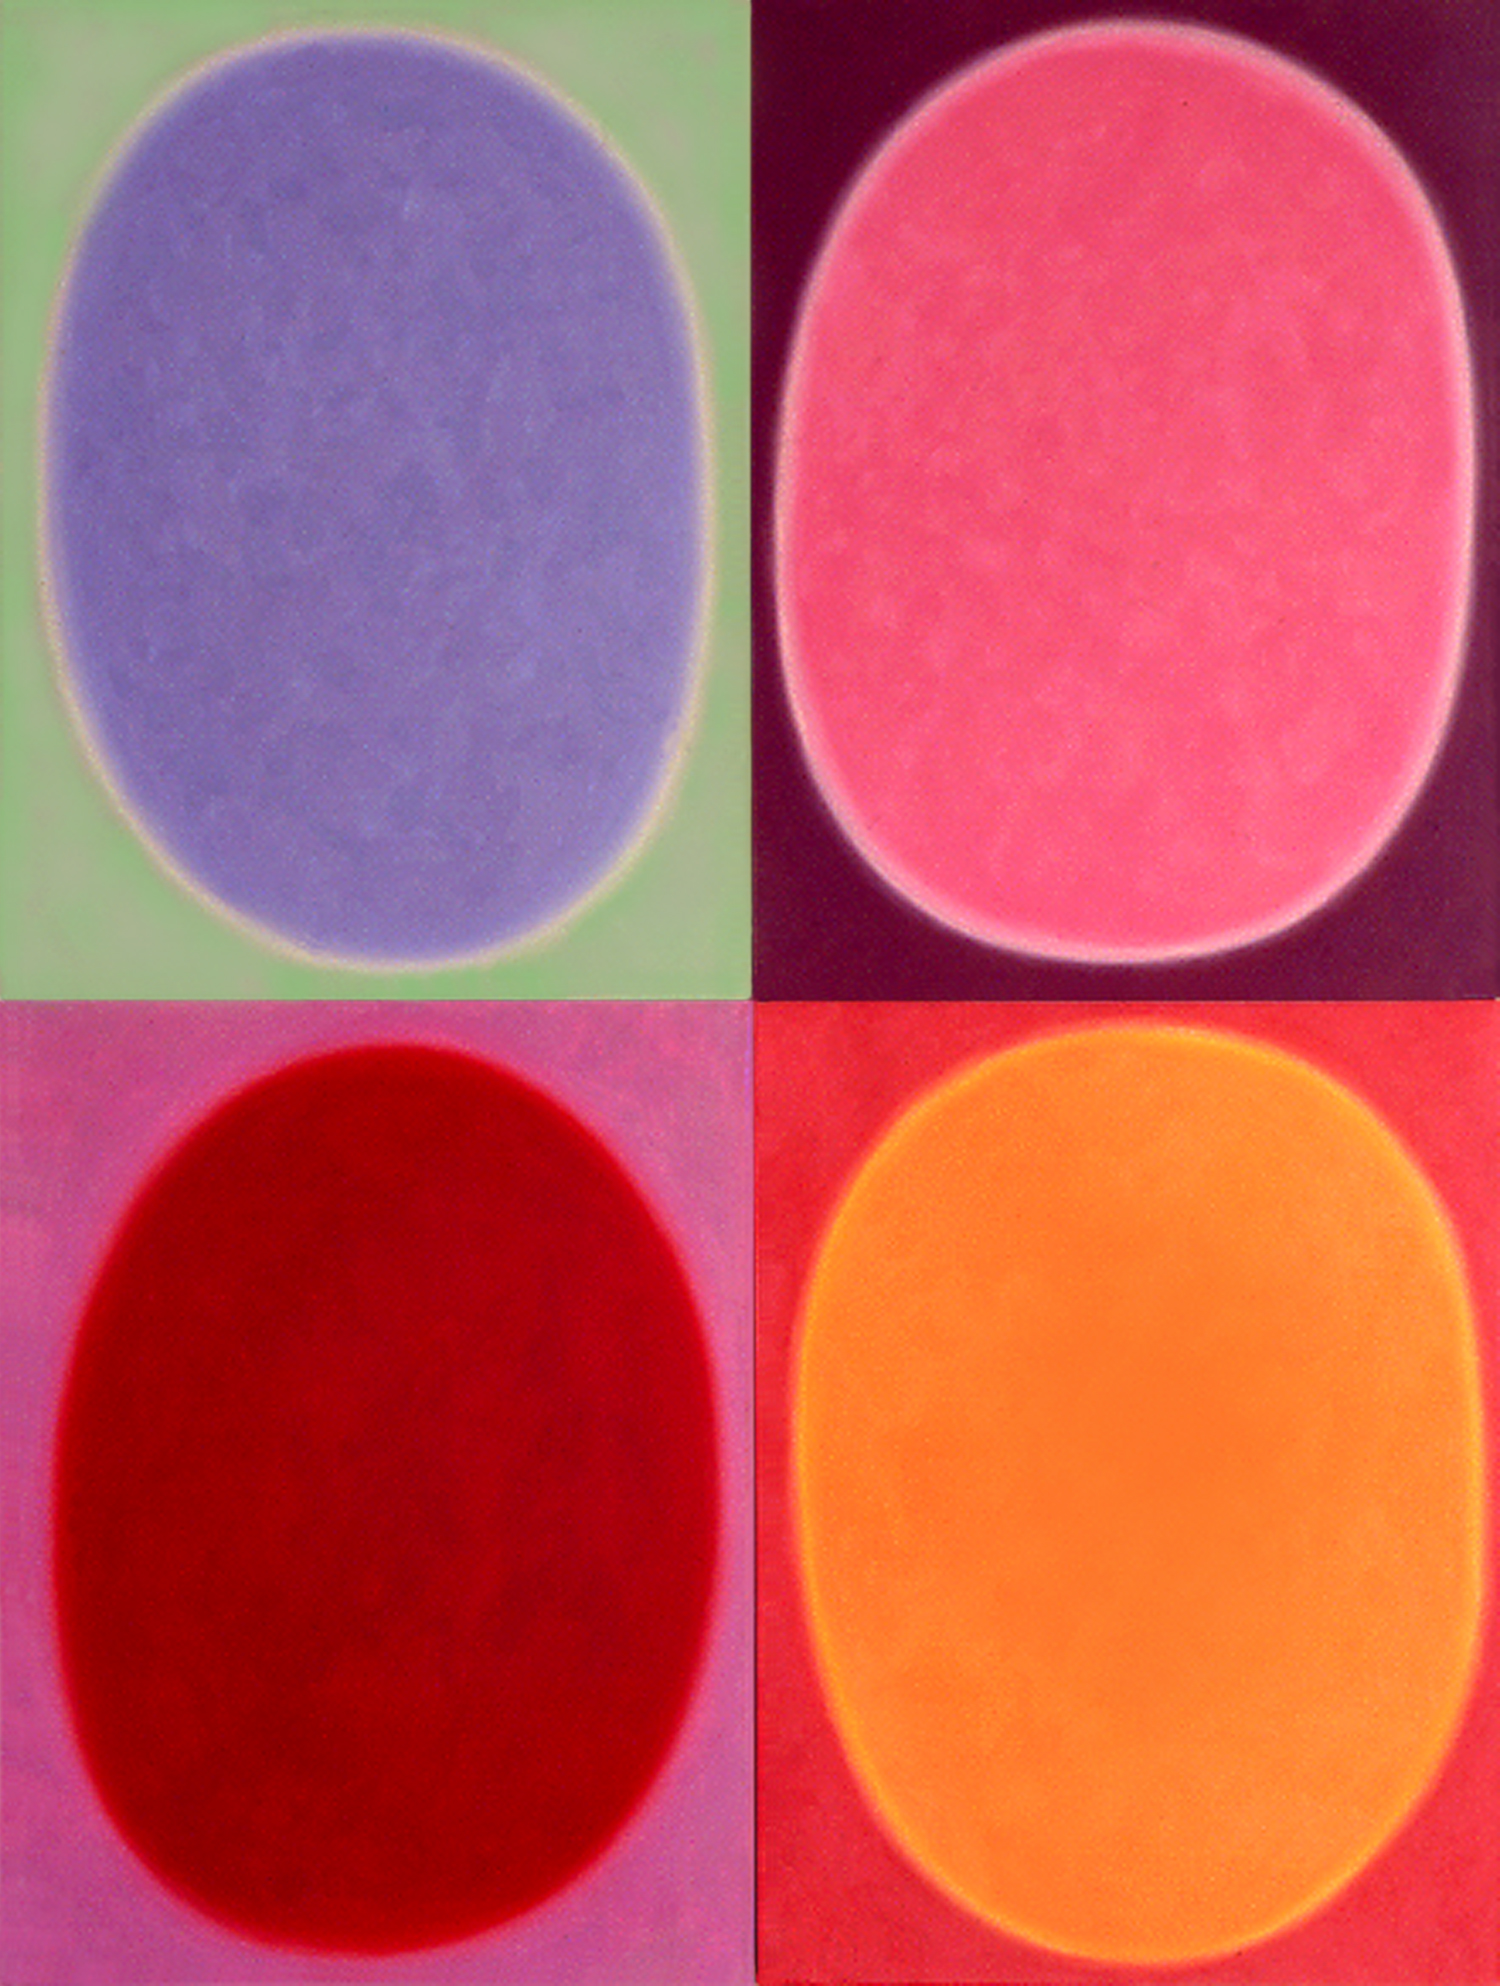 """Silent 14, oil on canvas, 2003, series of 4 panels W18"""" x H24"""" each, total format W36"""" x H48"""". Private collection."""